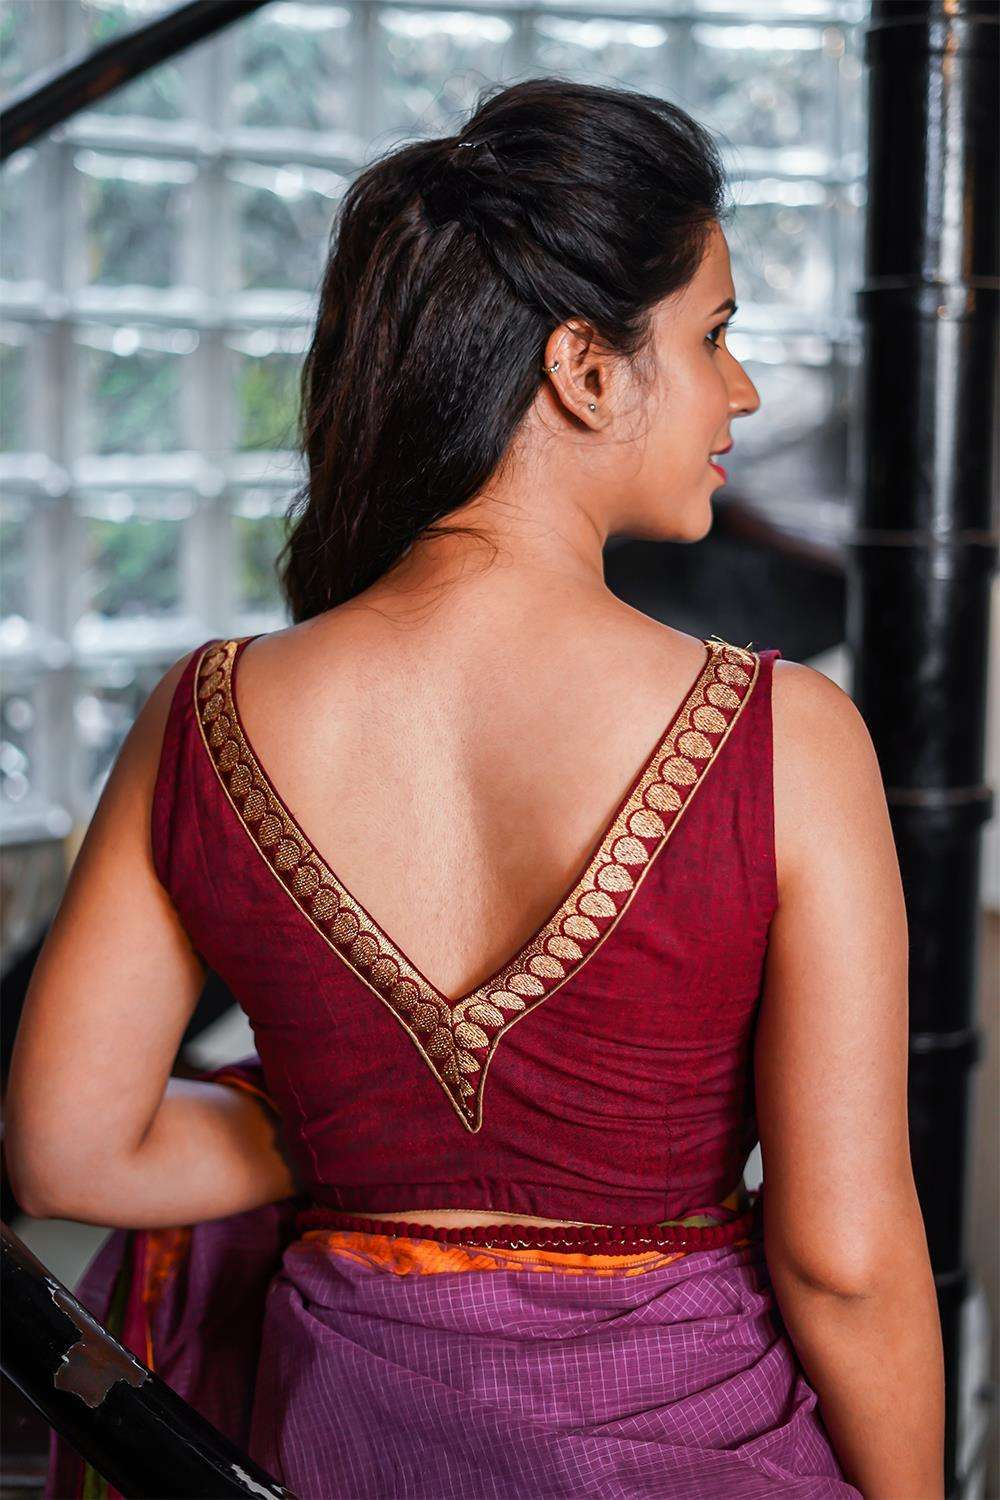 Maroon Khadi cotton V neck sleeveless blouse with maroon zari border - House of Blouse